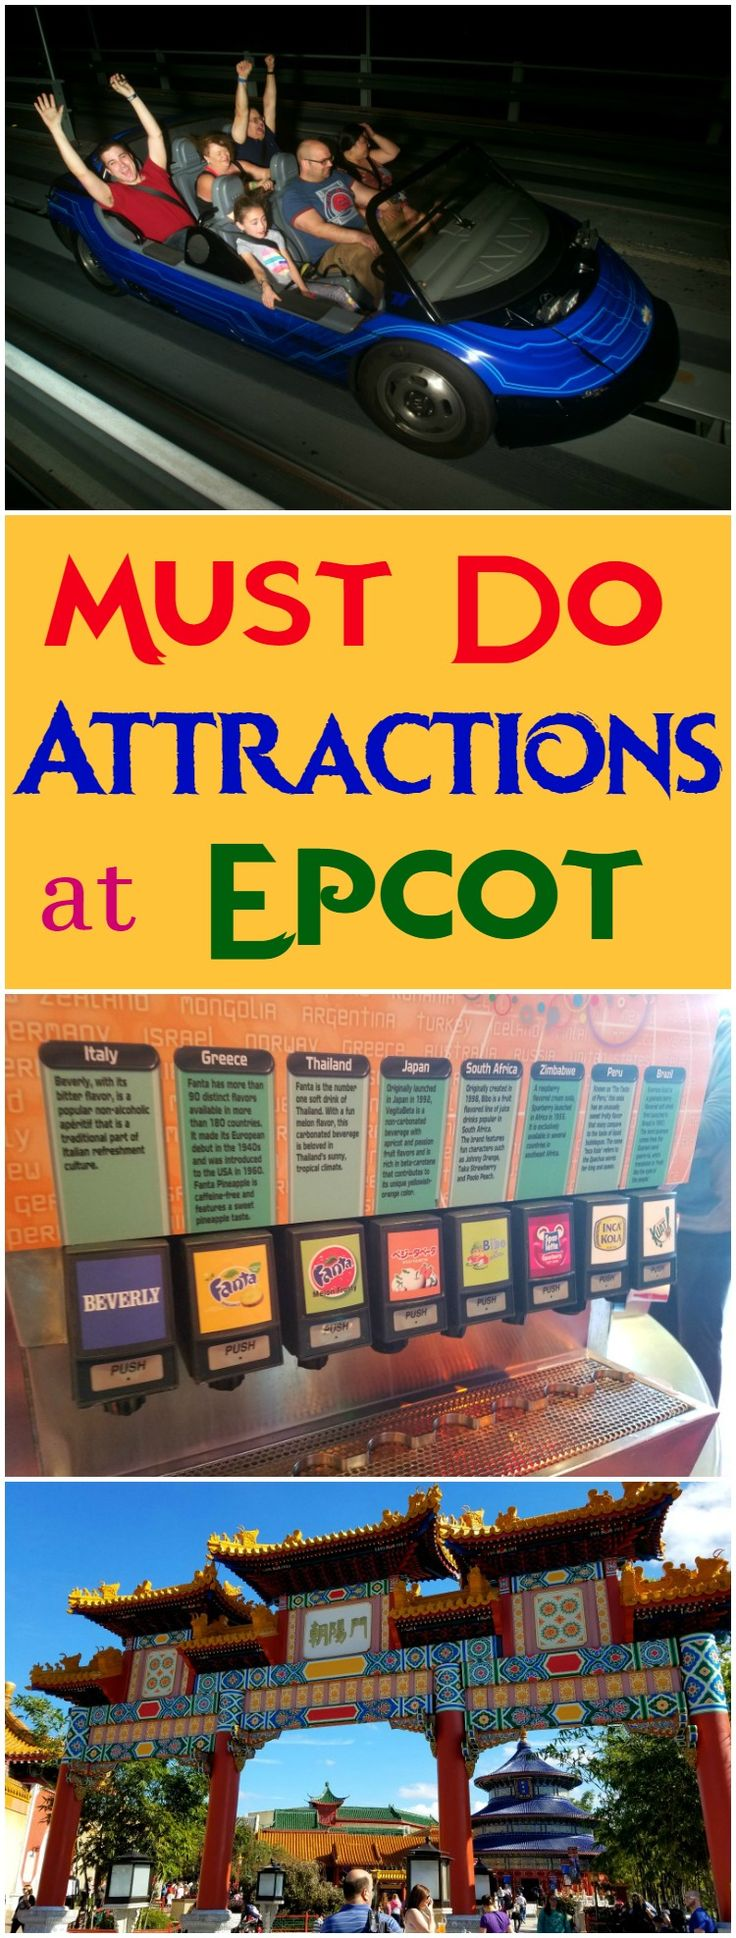 Epcot has so many amazing attractions. Here are a few that you will want to visit while at Epcot in Walt Disney World.